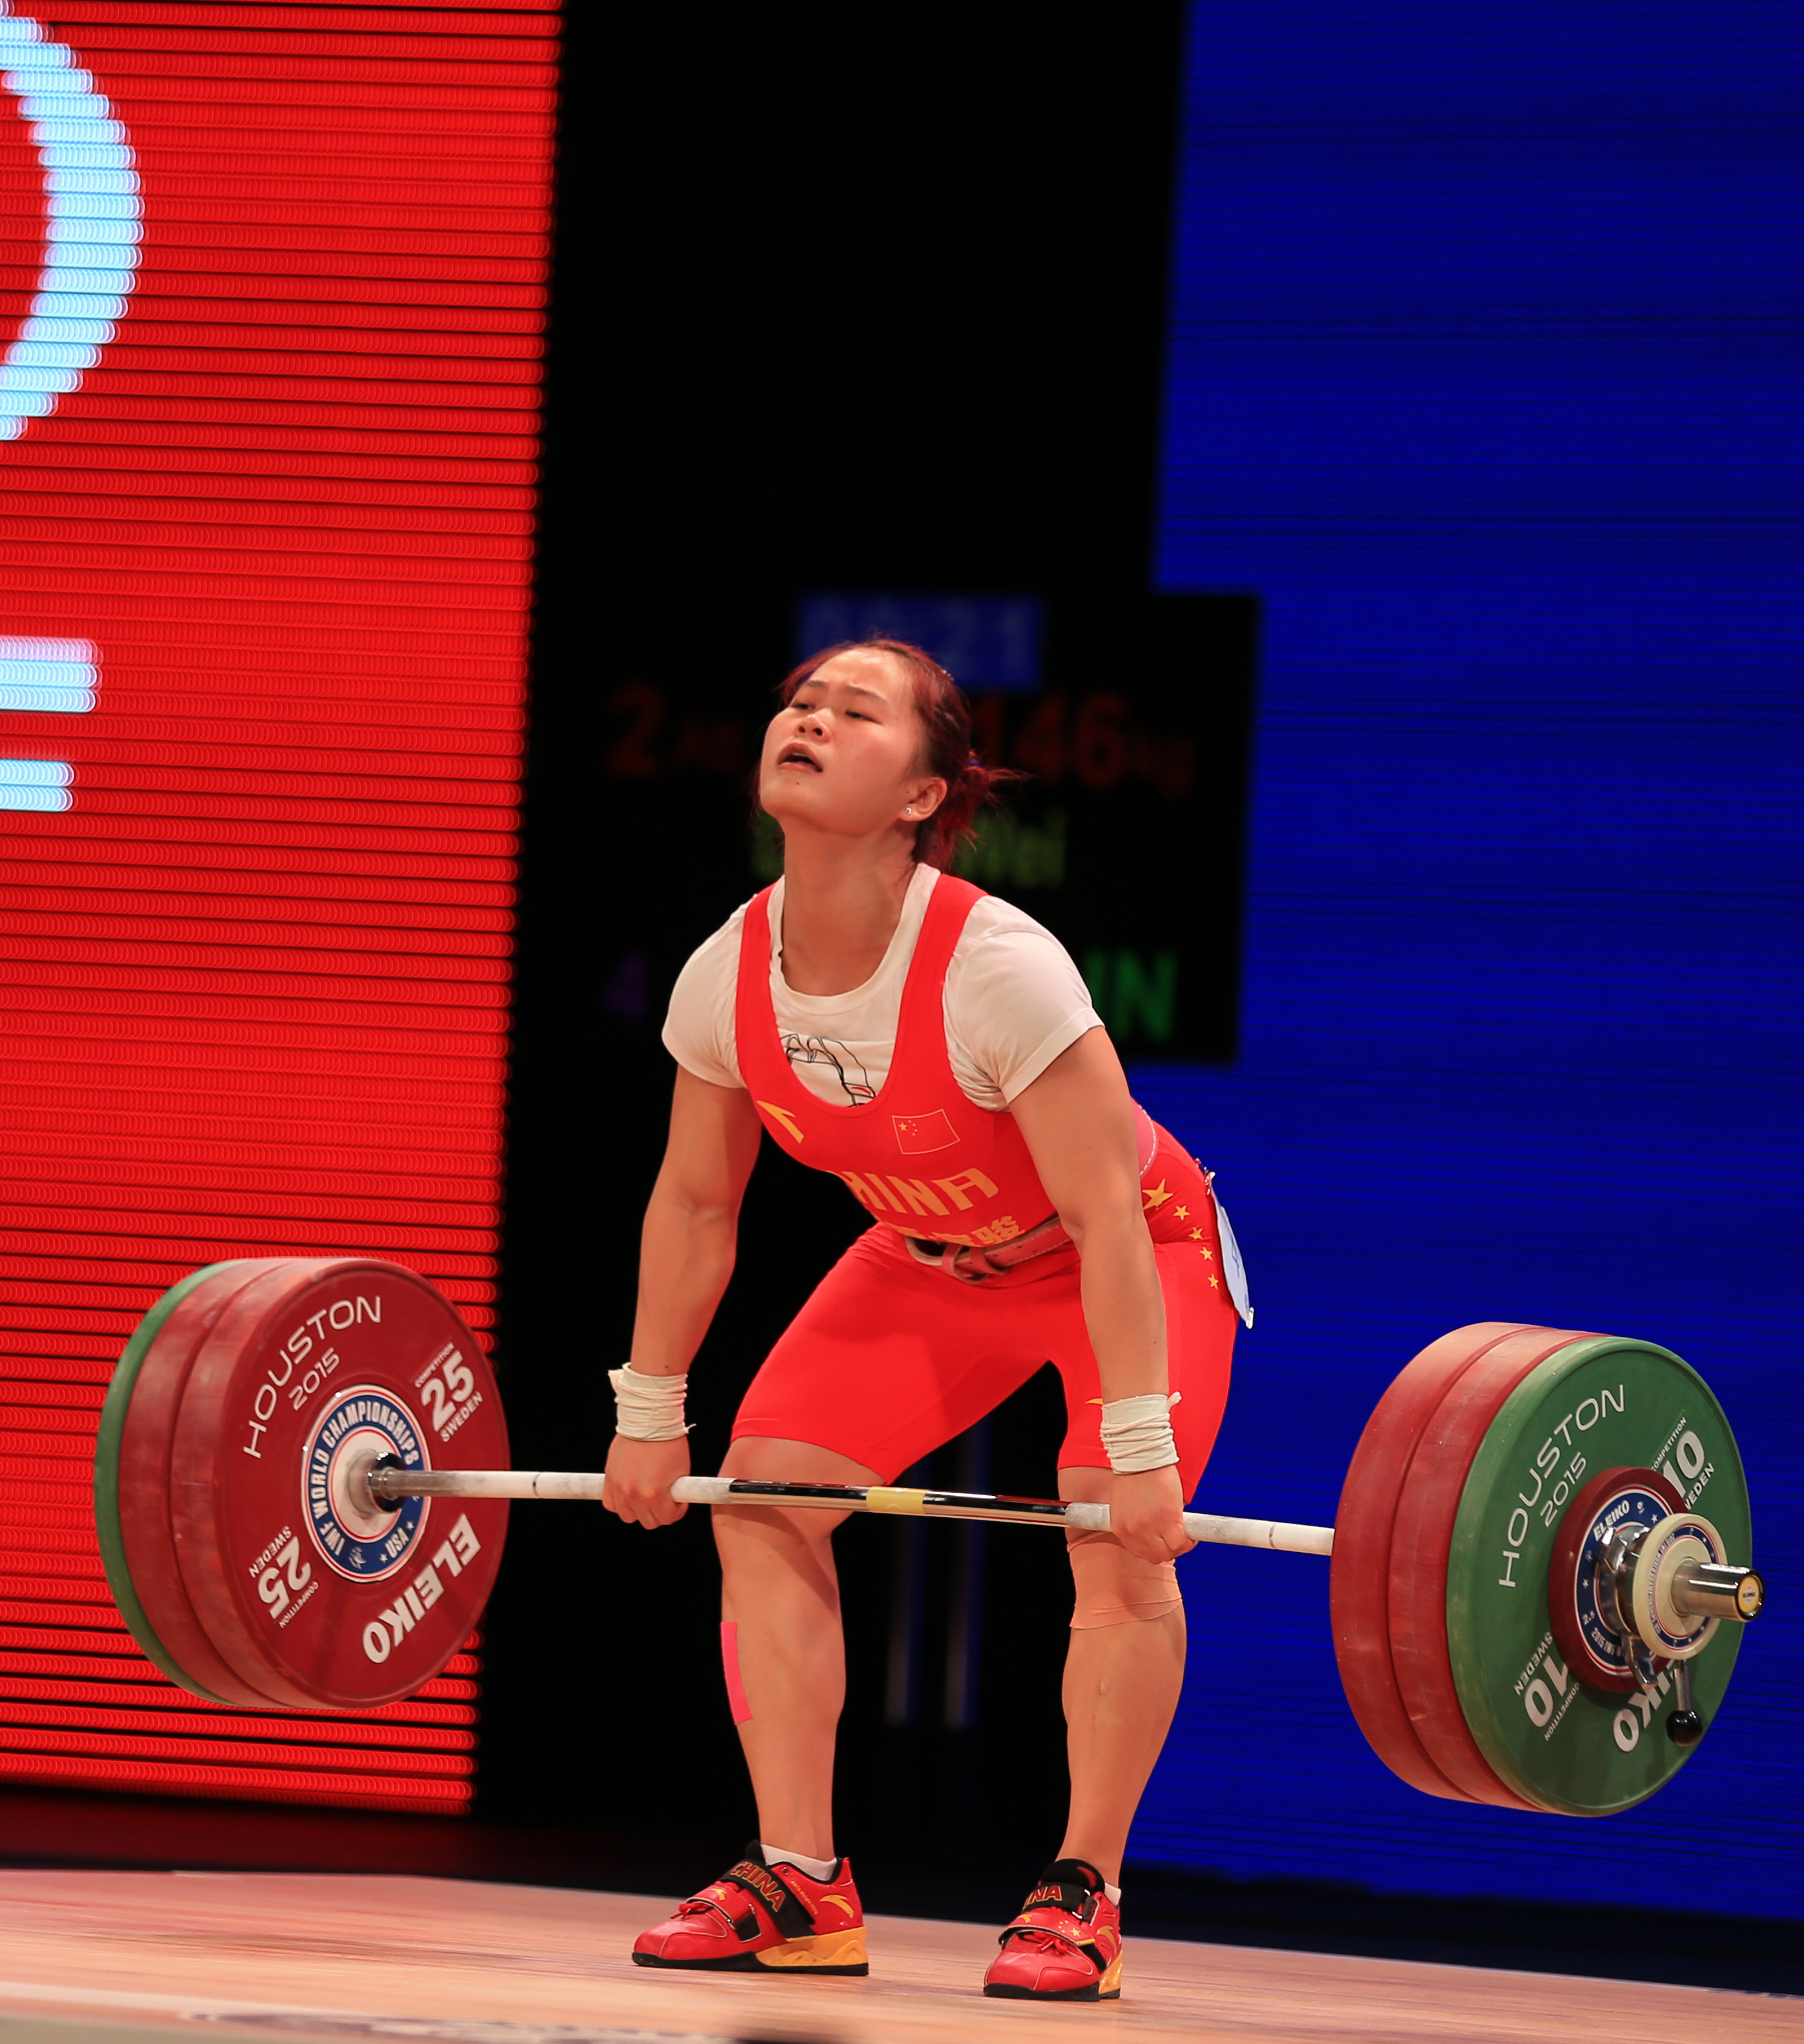 2015 World Weightlifting Championships Part I: The Women